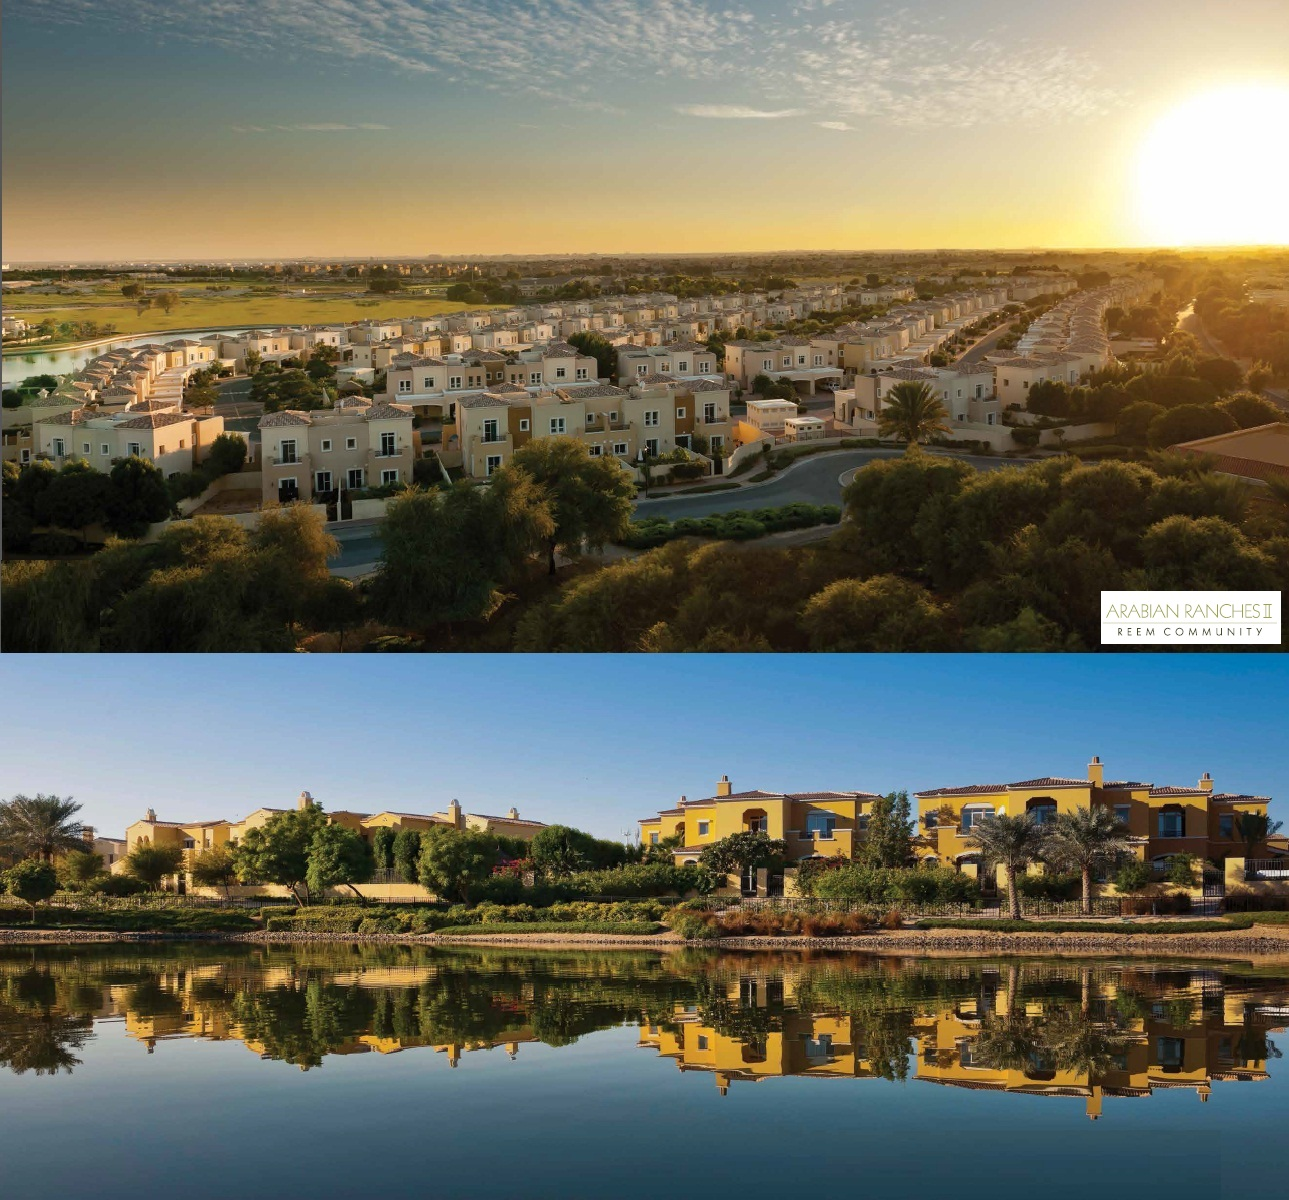 emaar-arabian-ranches-dubai